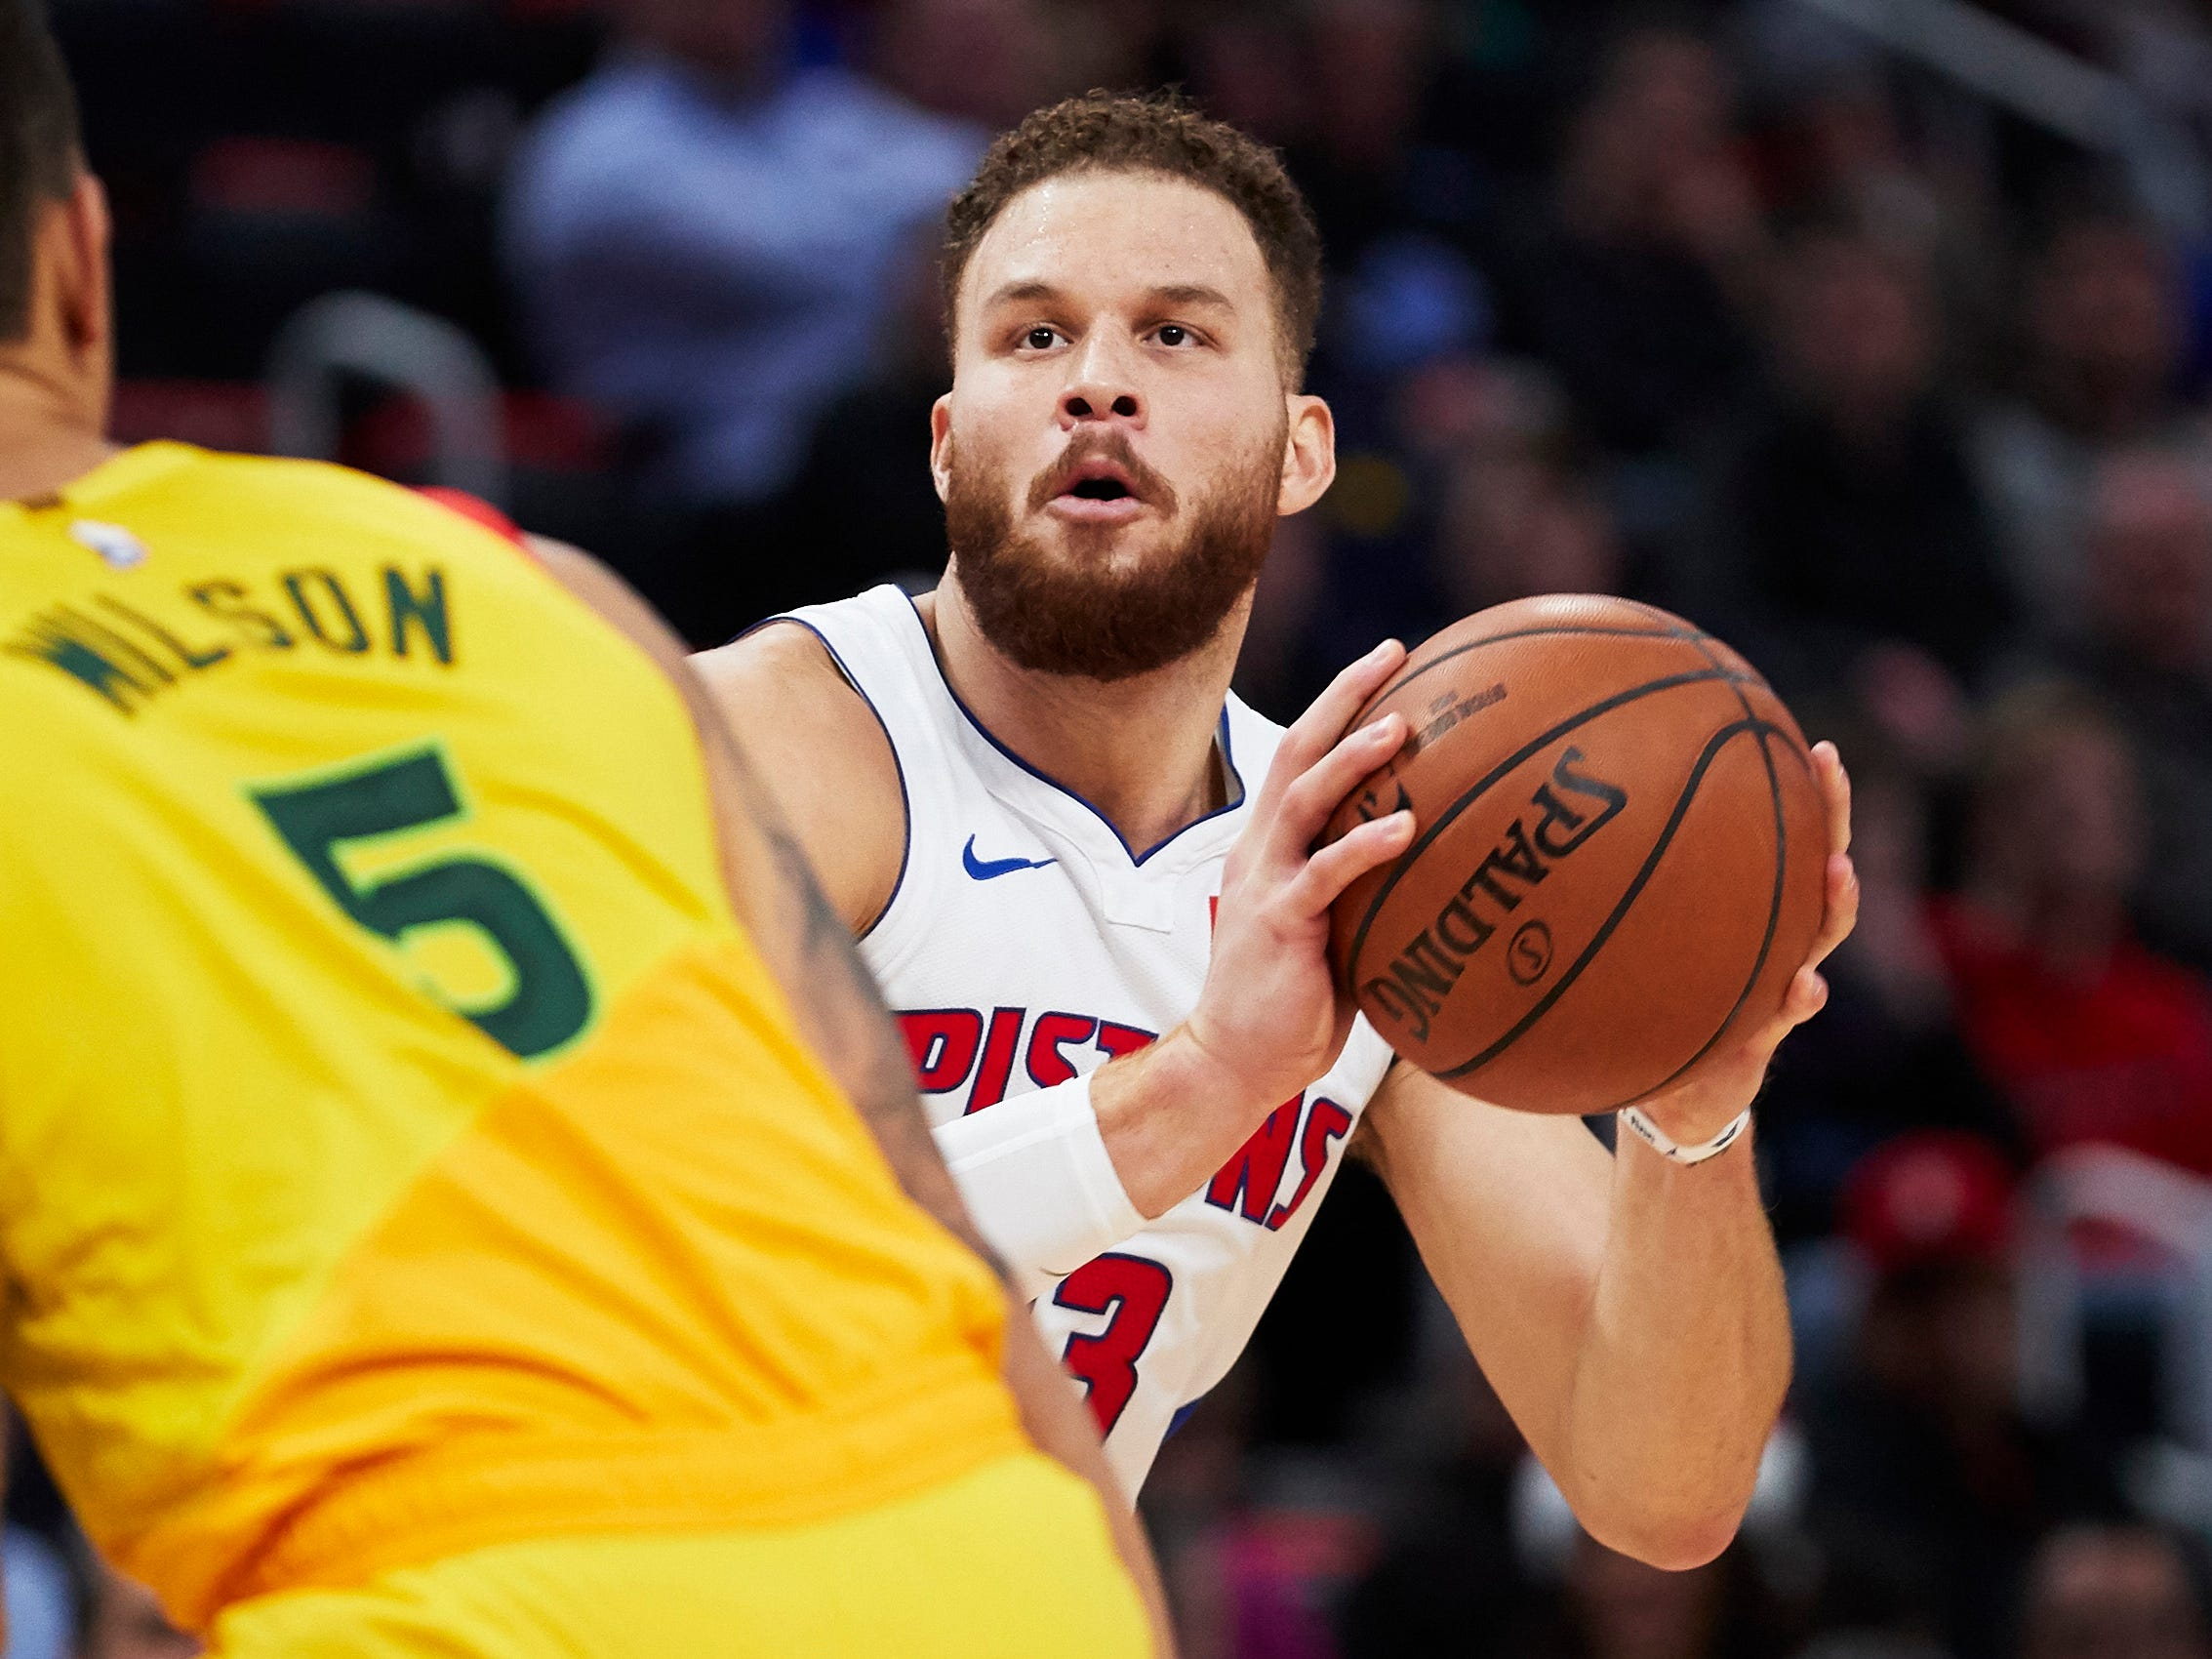 29. Blake Griffin, Pistons (Dec. 17): 19 points, 11 assists, 10 rebounds in 107-104 loss to Bucks.